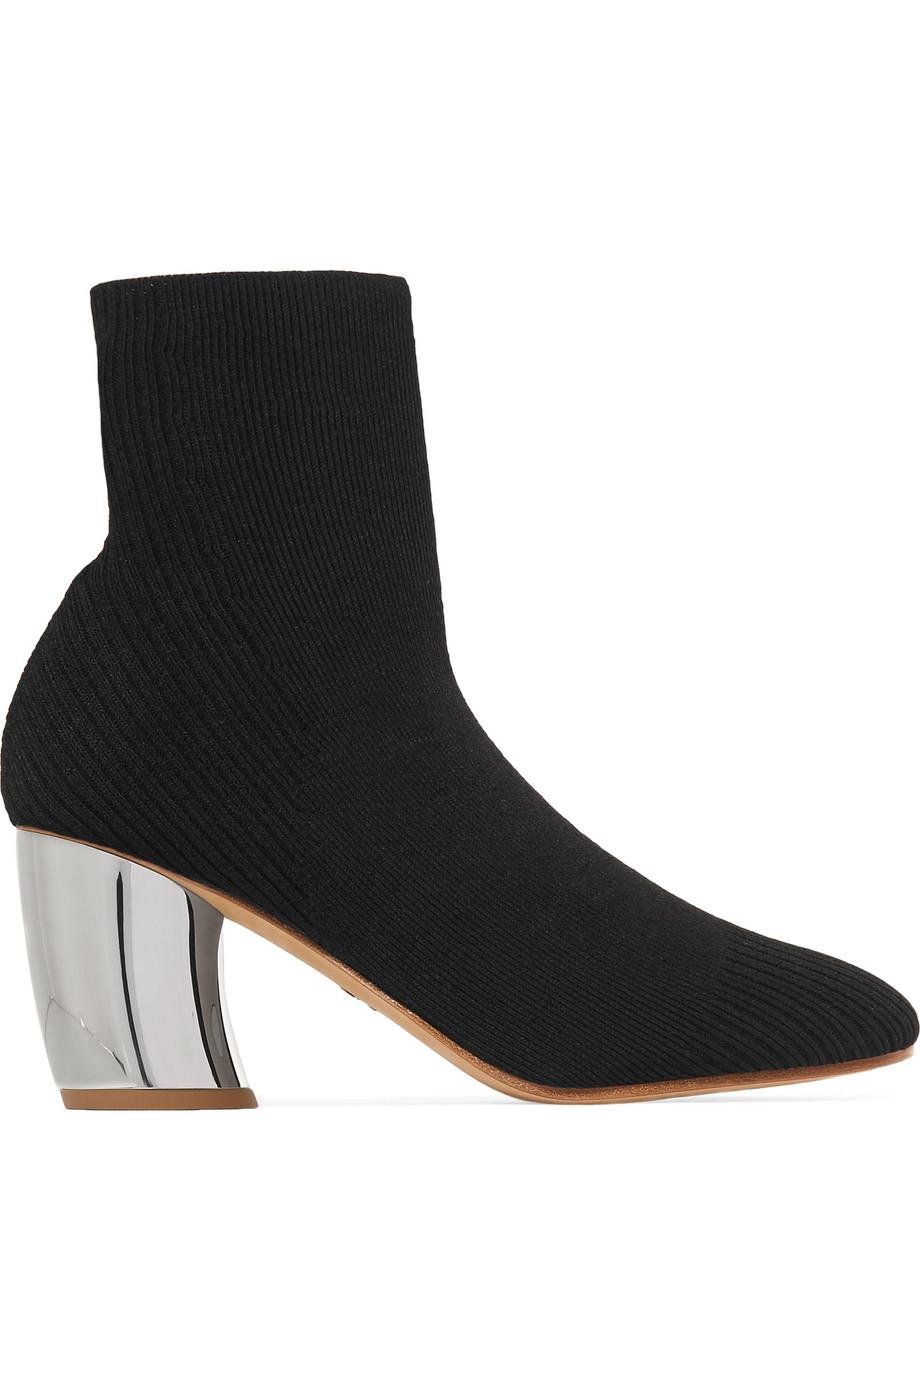 Proenza Schouler Ribbed Sock Booties